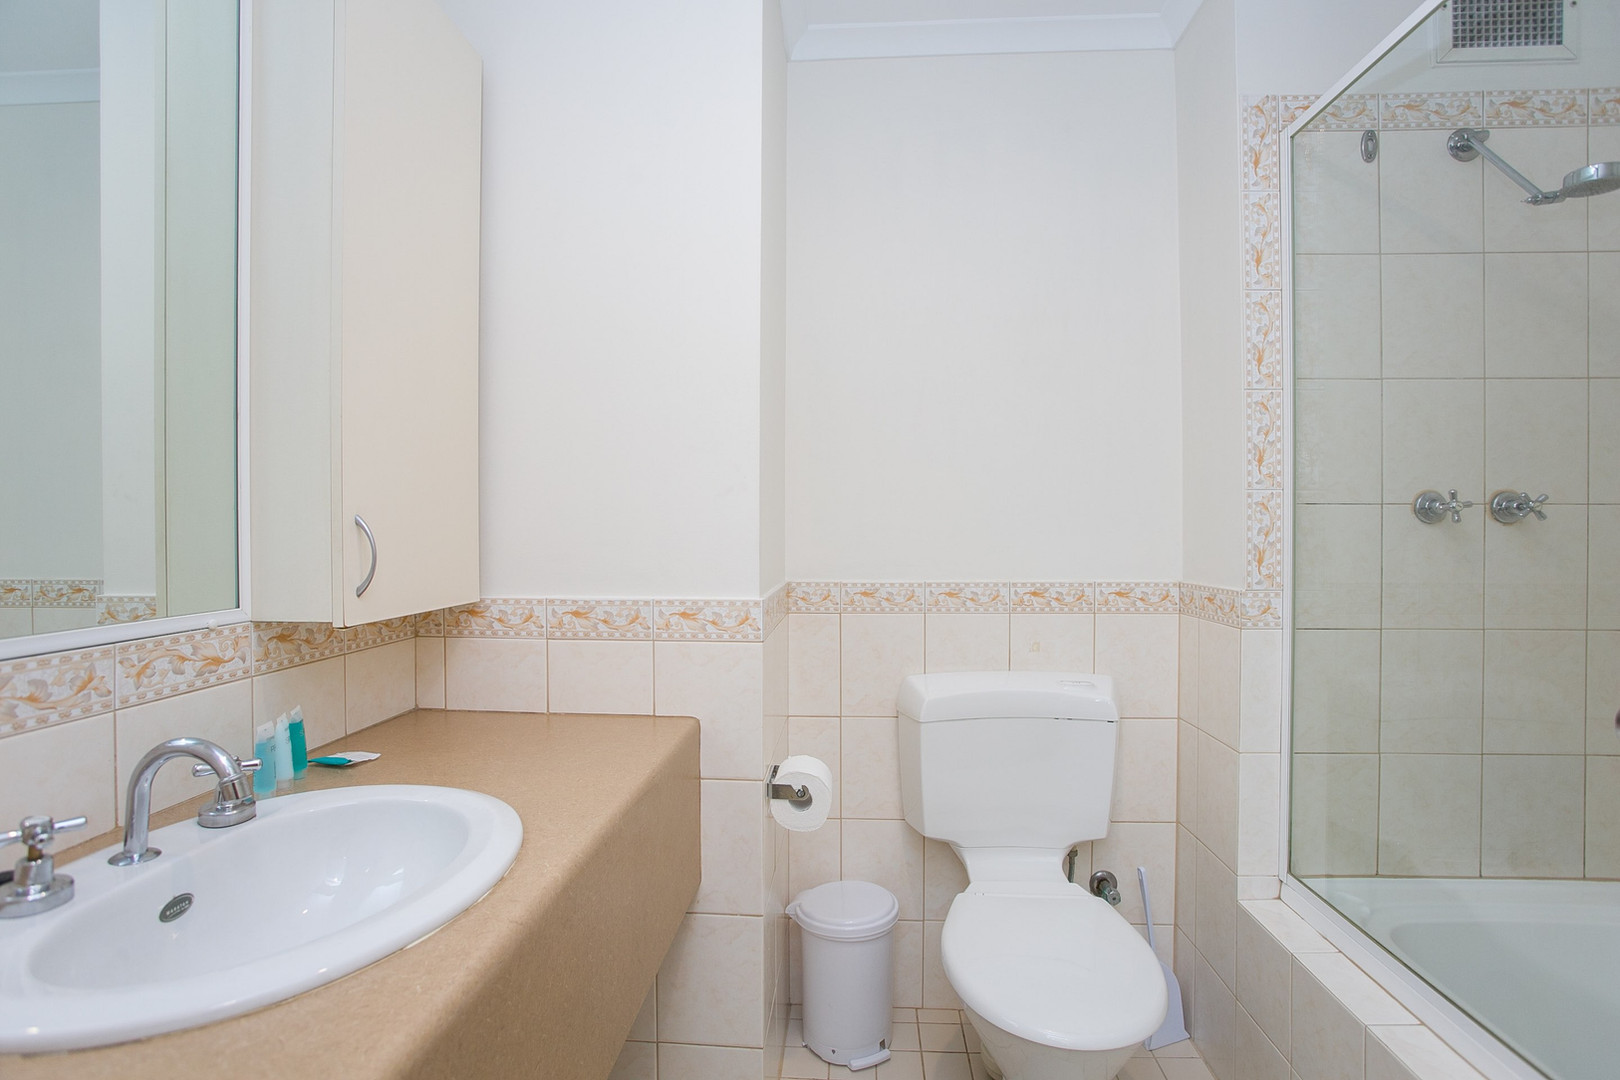 Studio Apartment Ensuite - Short Term Rental Perth CBD.jpg